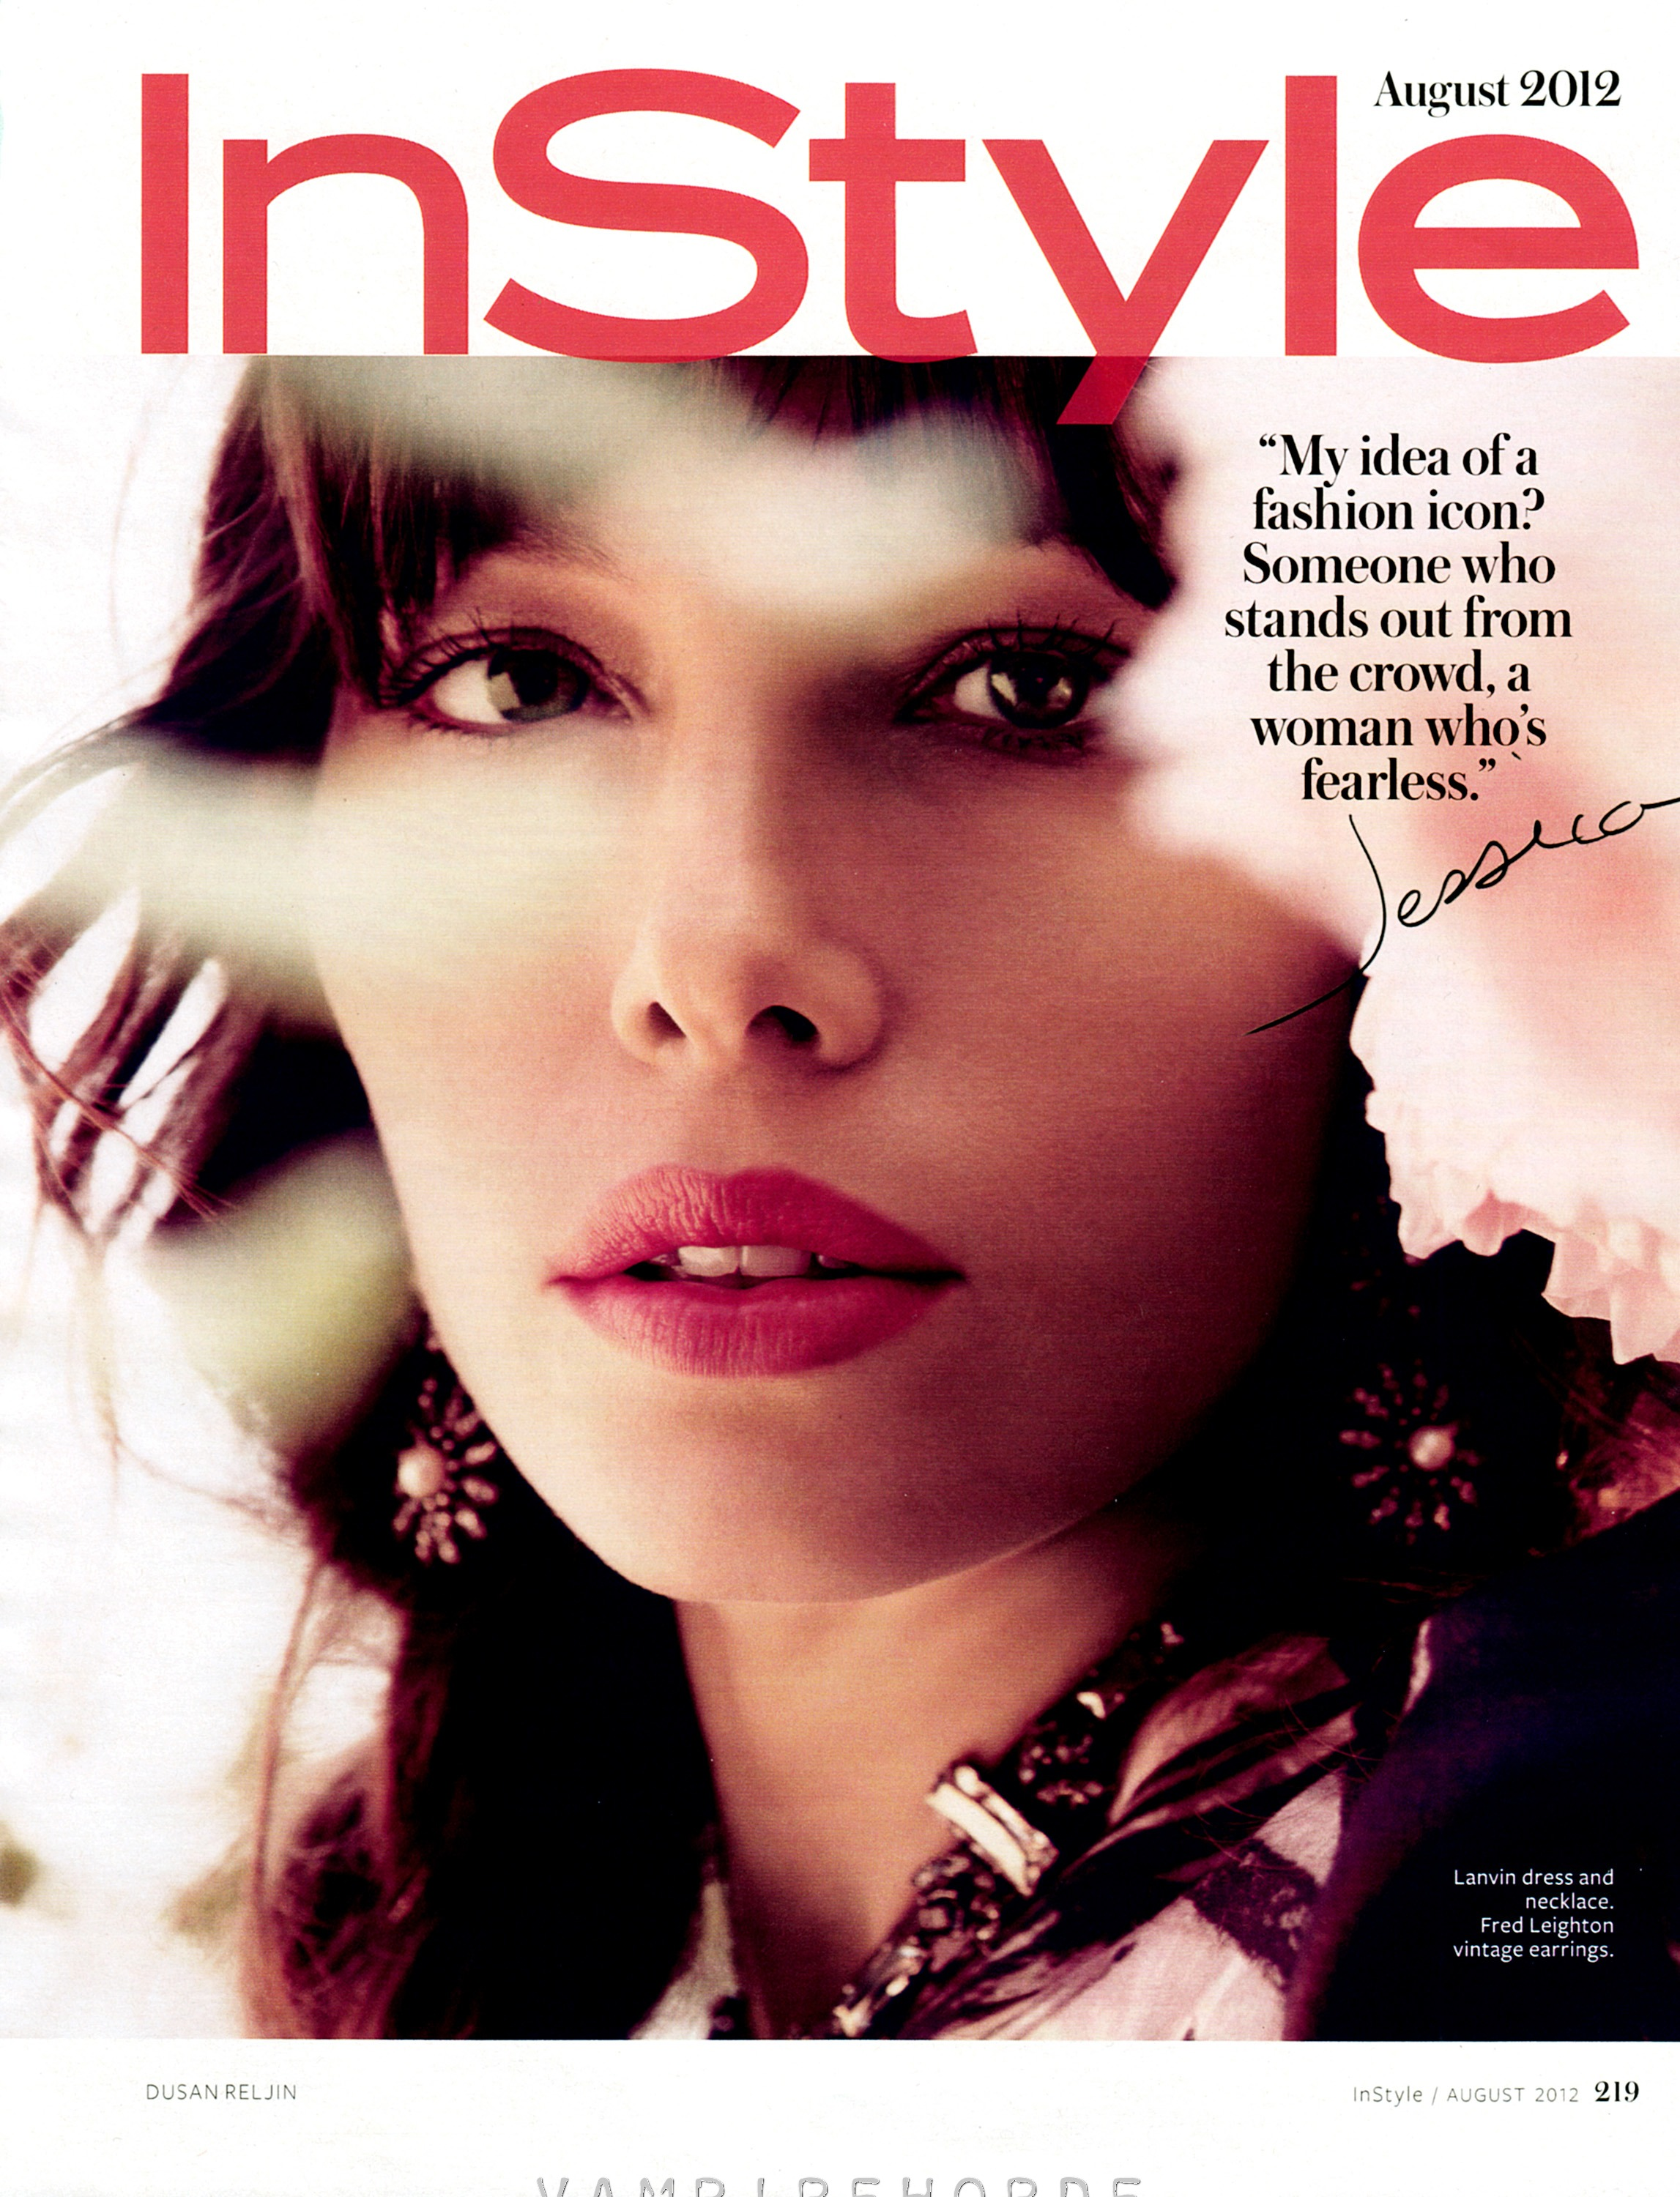 446280762_fashion_scans_remastered_jessica_biel_instyle_usa_aughust_2012_scanned_by_vampirehorde_hq_4_122_173lo.jpg